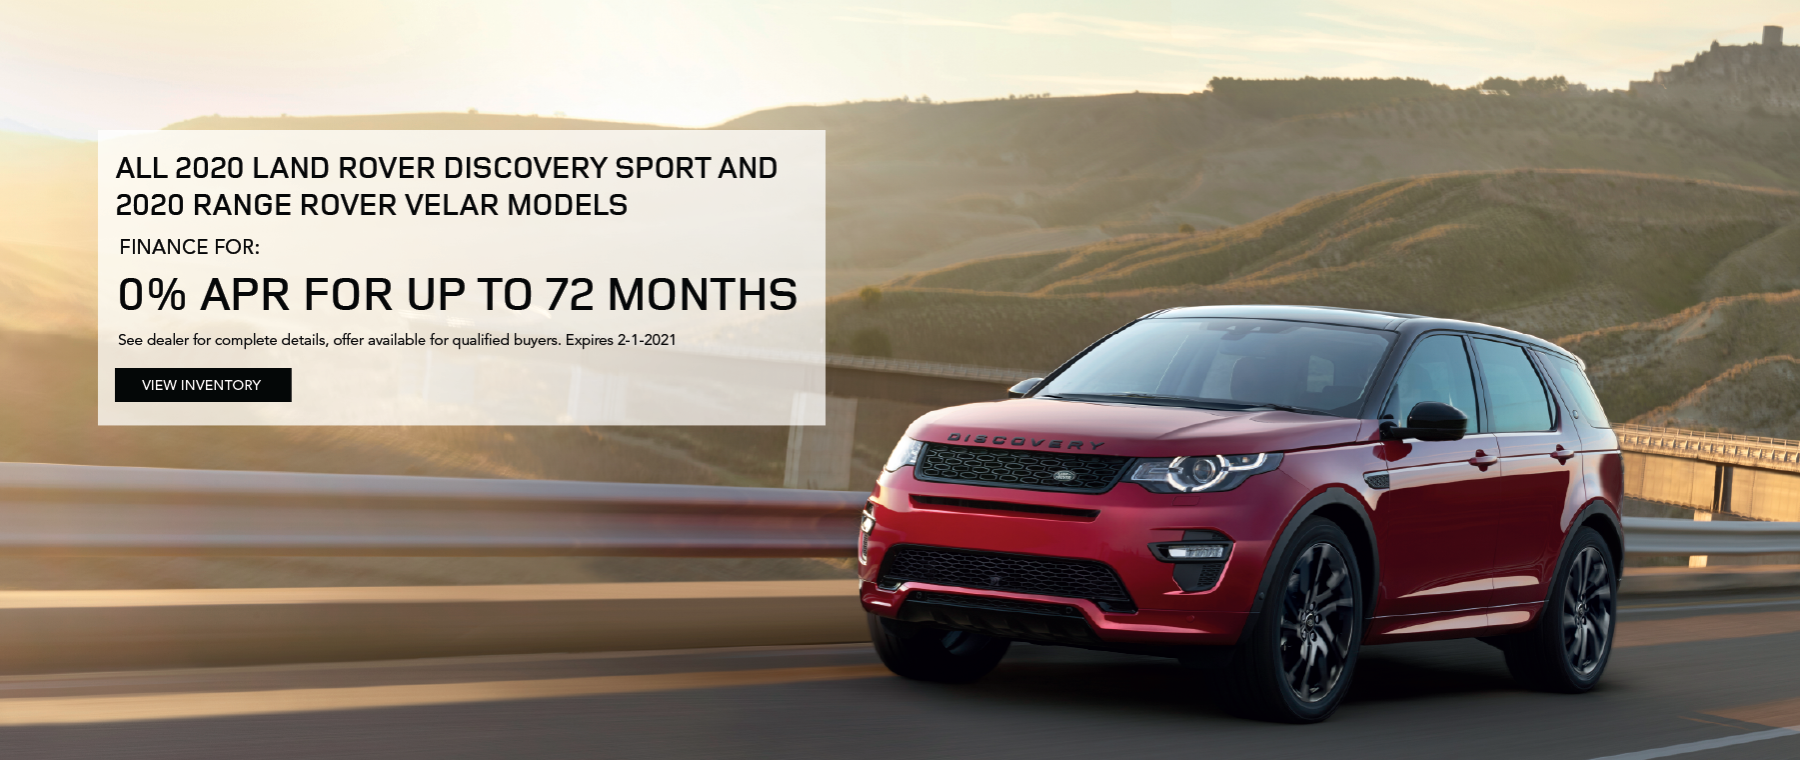 RED 2020 LAND ROVER DISCOVERY SPORT DRIVING ON ROAD WITH MOUNTIAN IN DISTANCE CLICK TO VIEW INVENTORY.